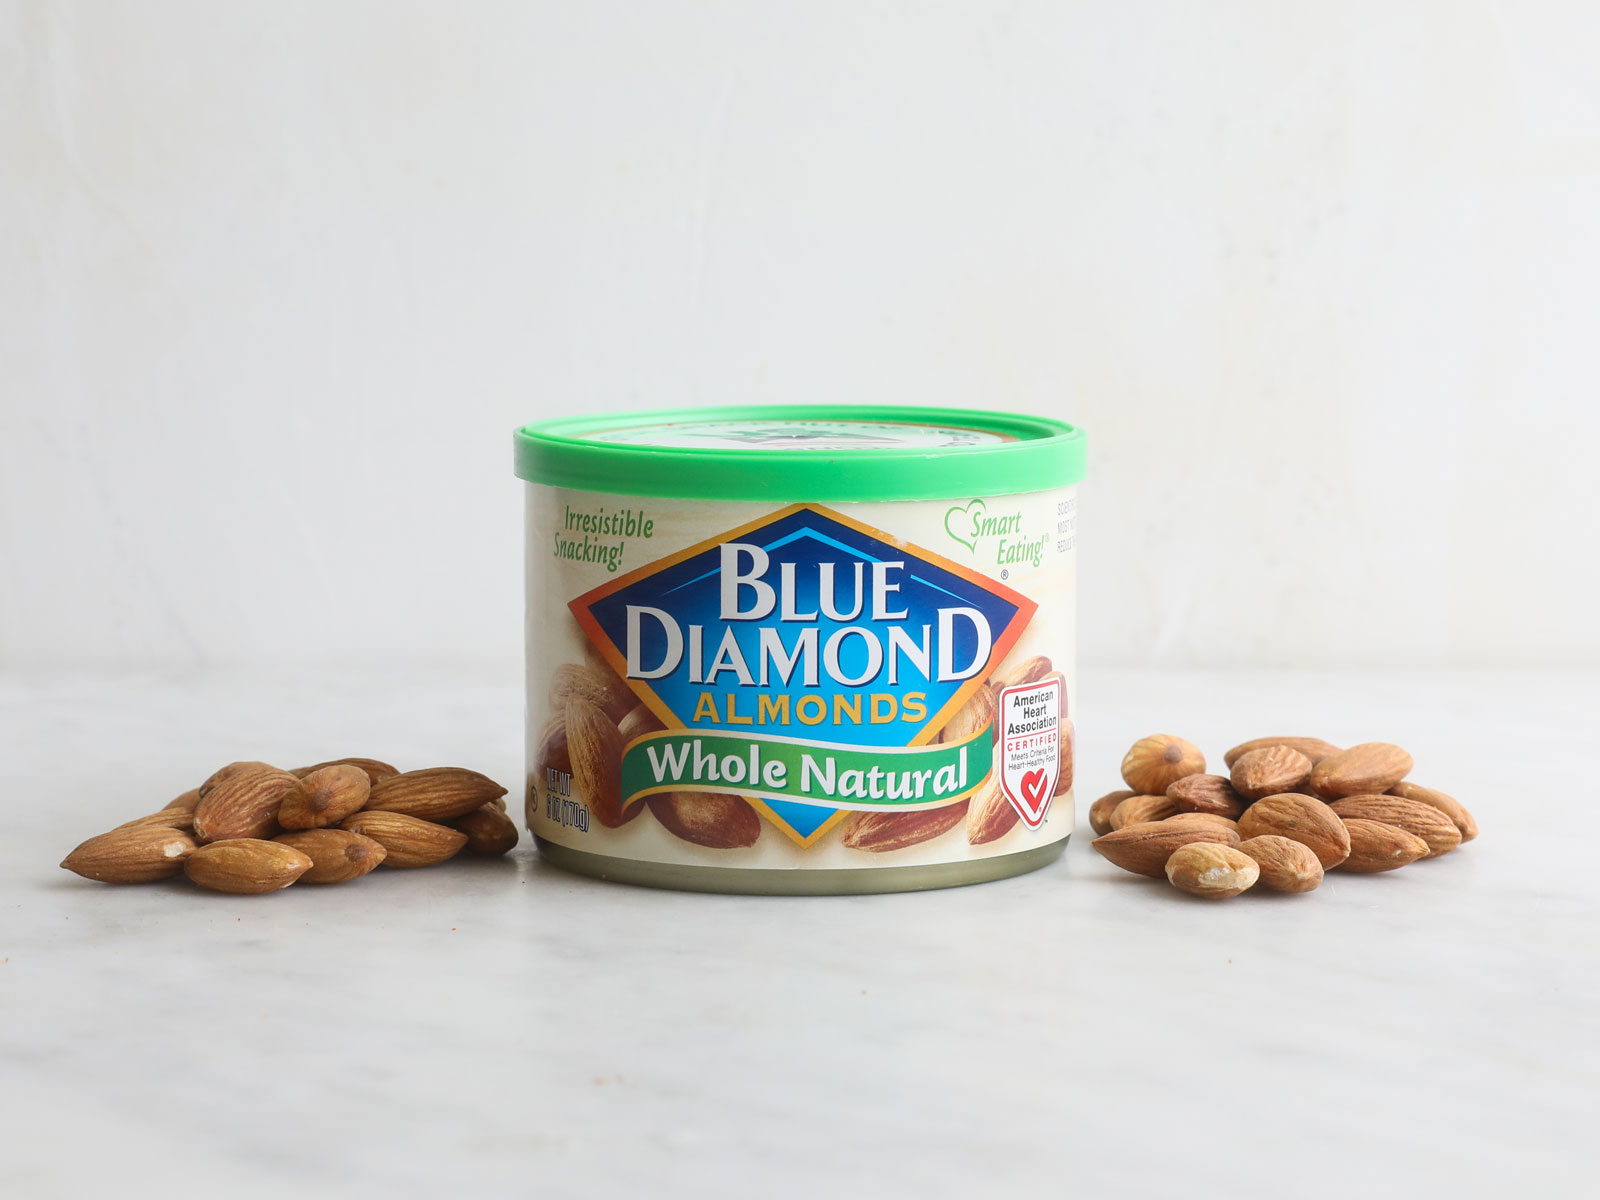 Whole Natural Almonds